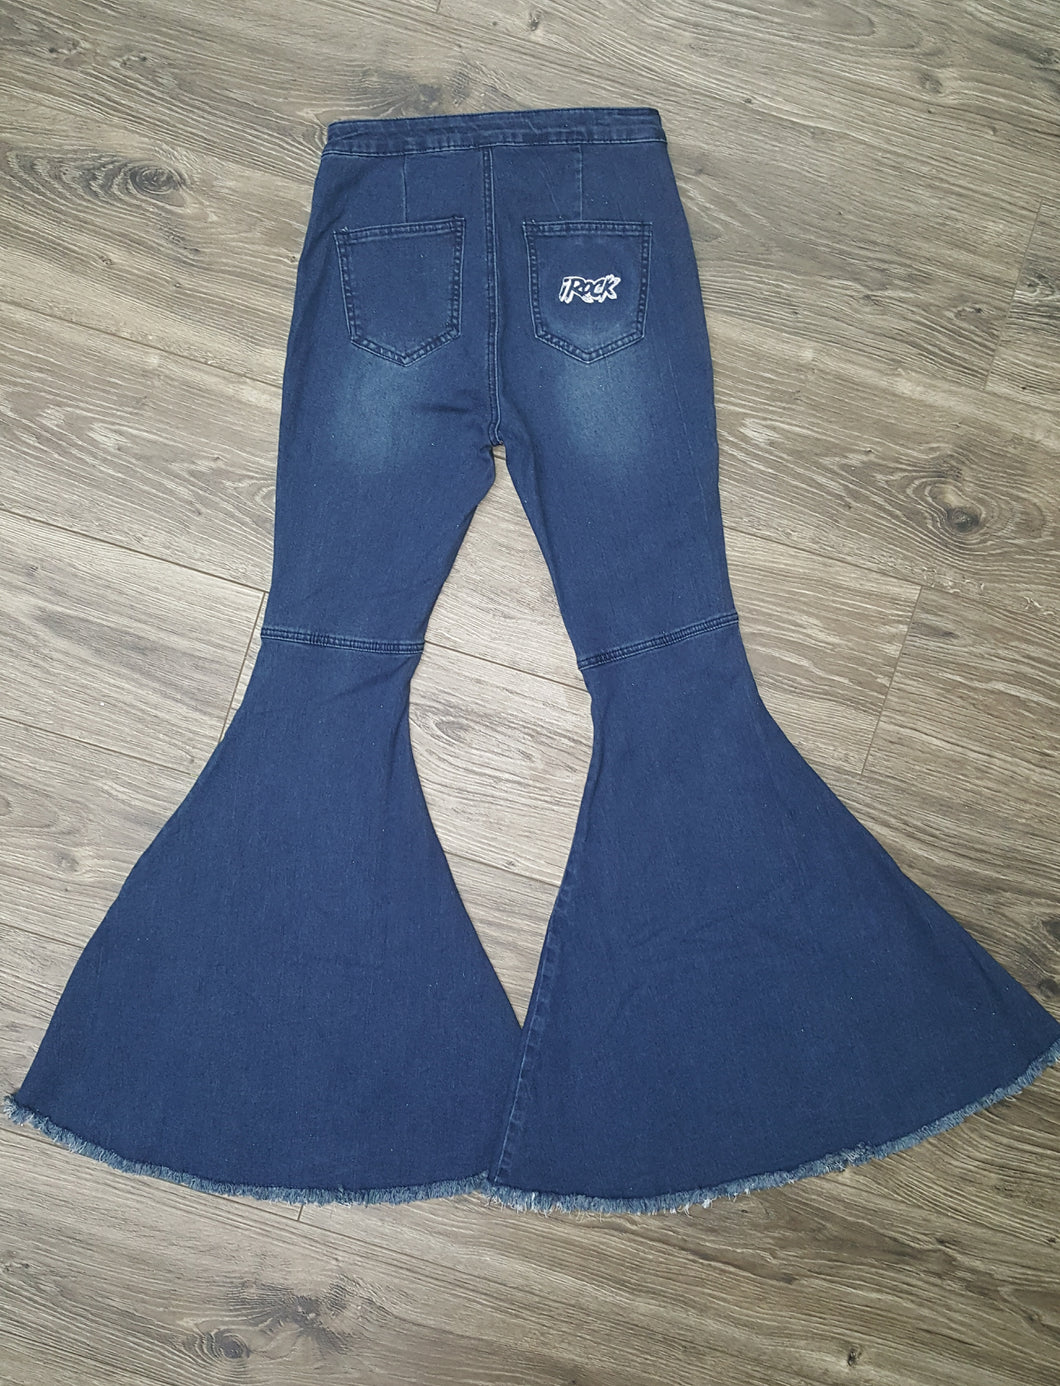 Ring The Bell Denim